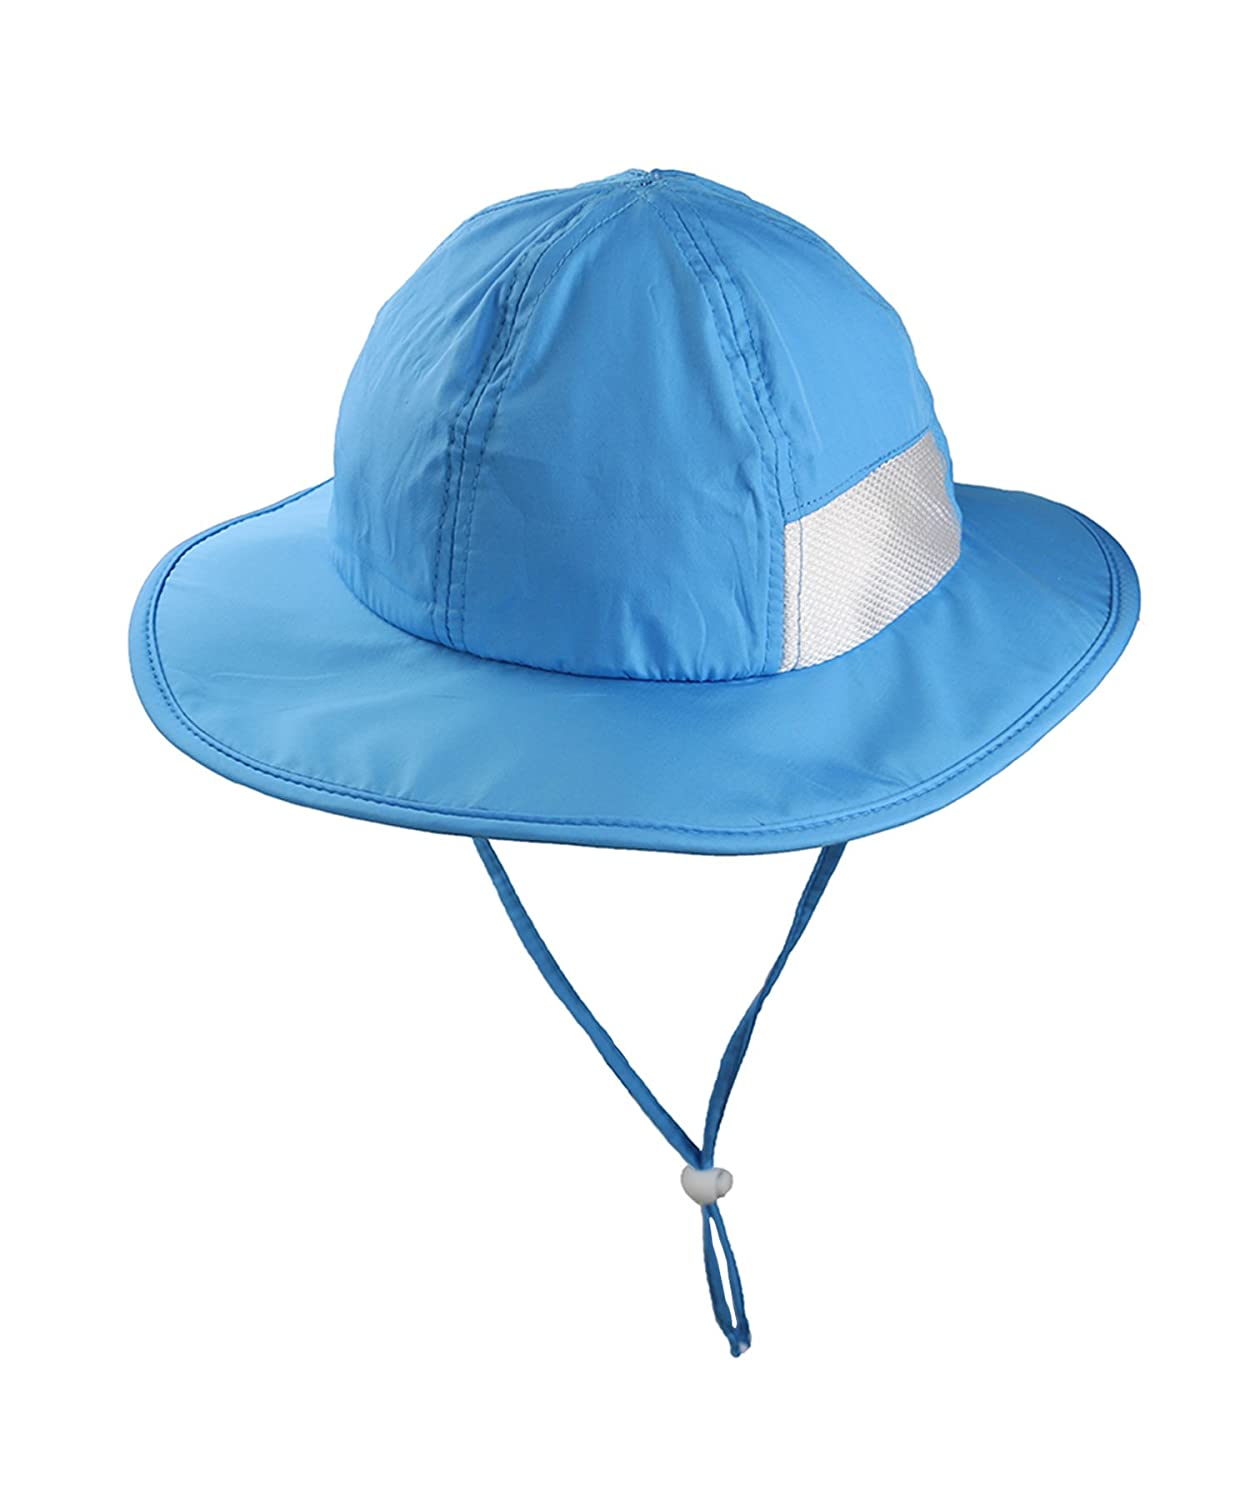 Amazon.com  ZZLAY Wide Brim Sun Hat SPF 50+ UV Protection Breathable  Adjustable Cap for Baby Toddler Kids  Clothing 7b8677a4894